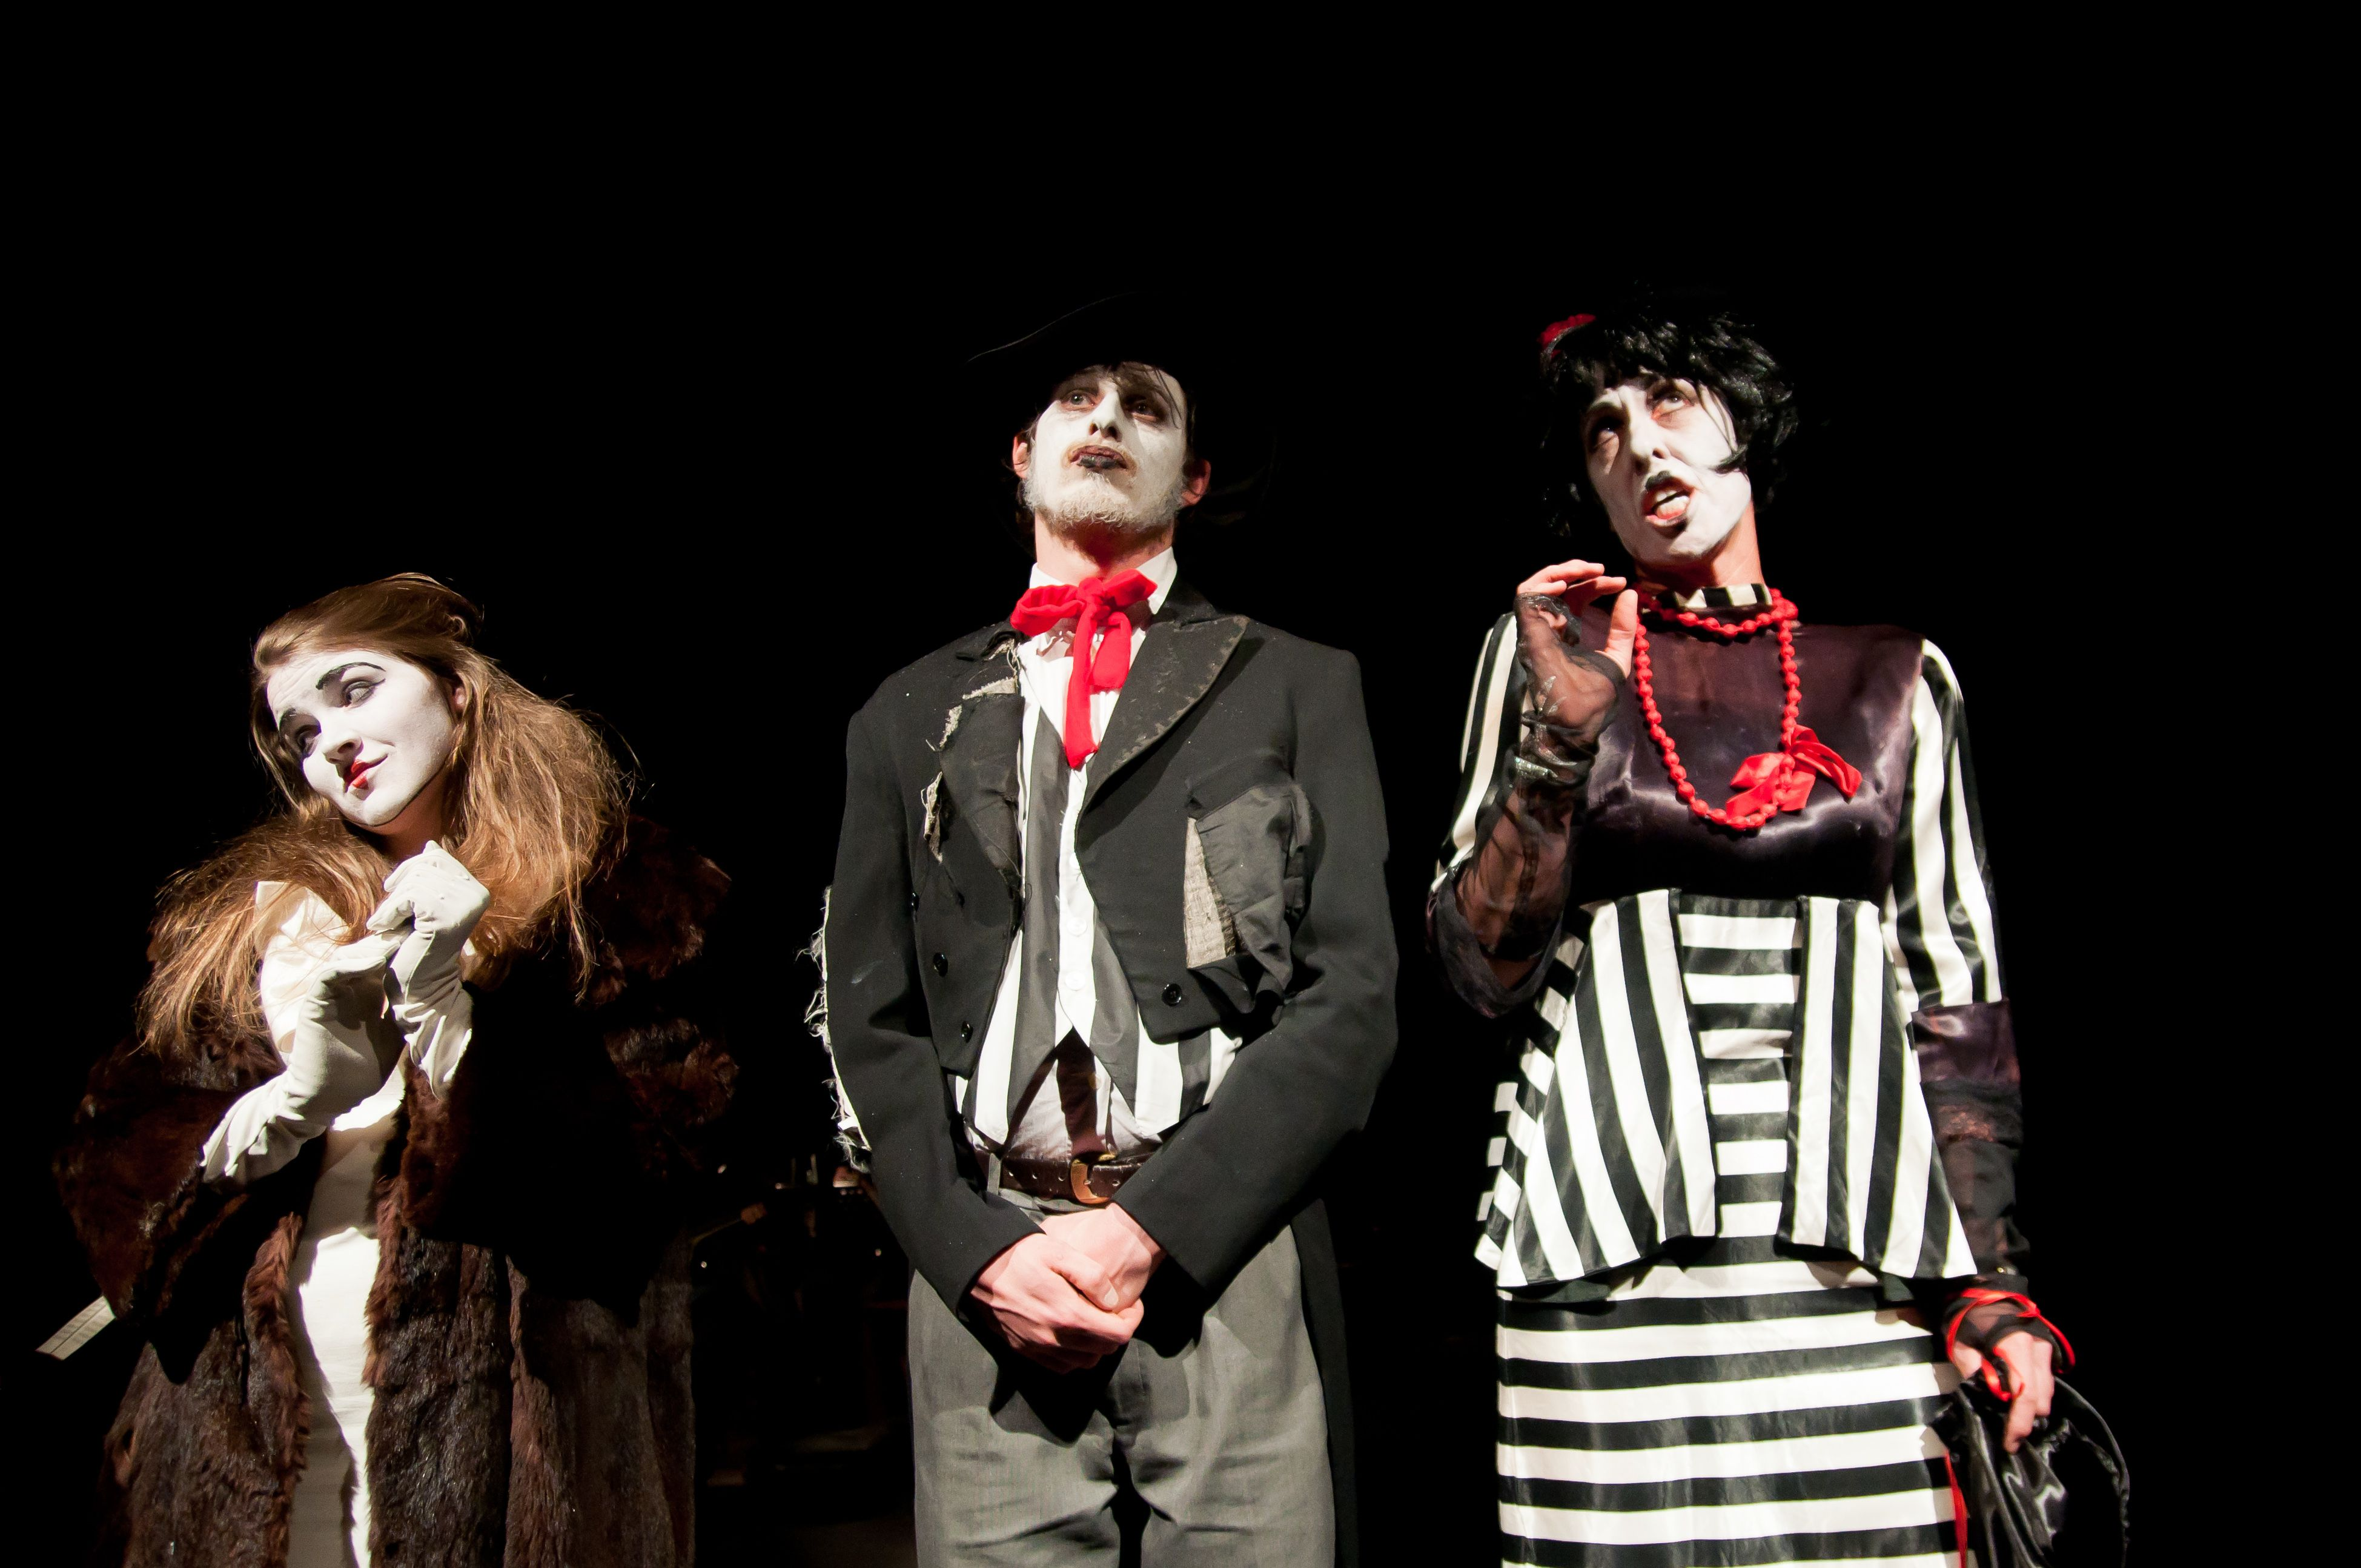 Polly Mr And Mrs Peachum The Threepenny Opera By Bertolt Brecht Produced By Felt Tip Theatre Company